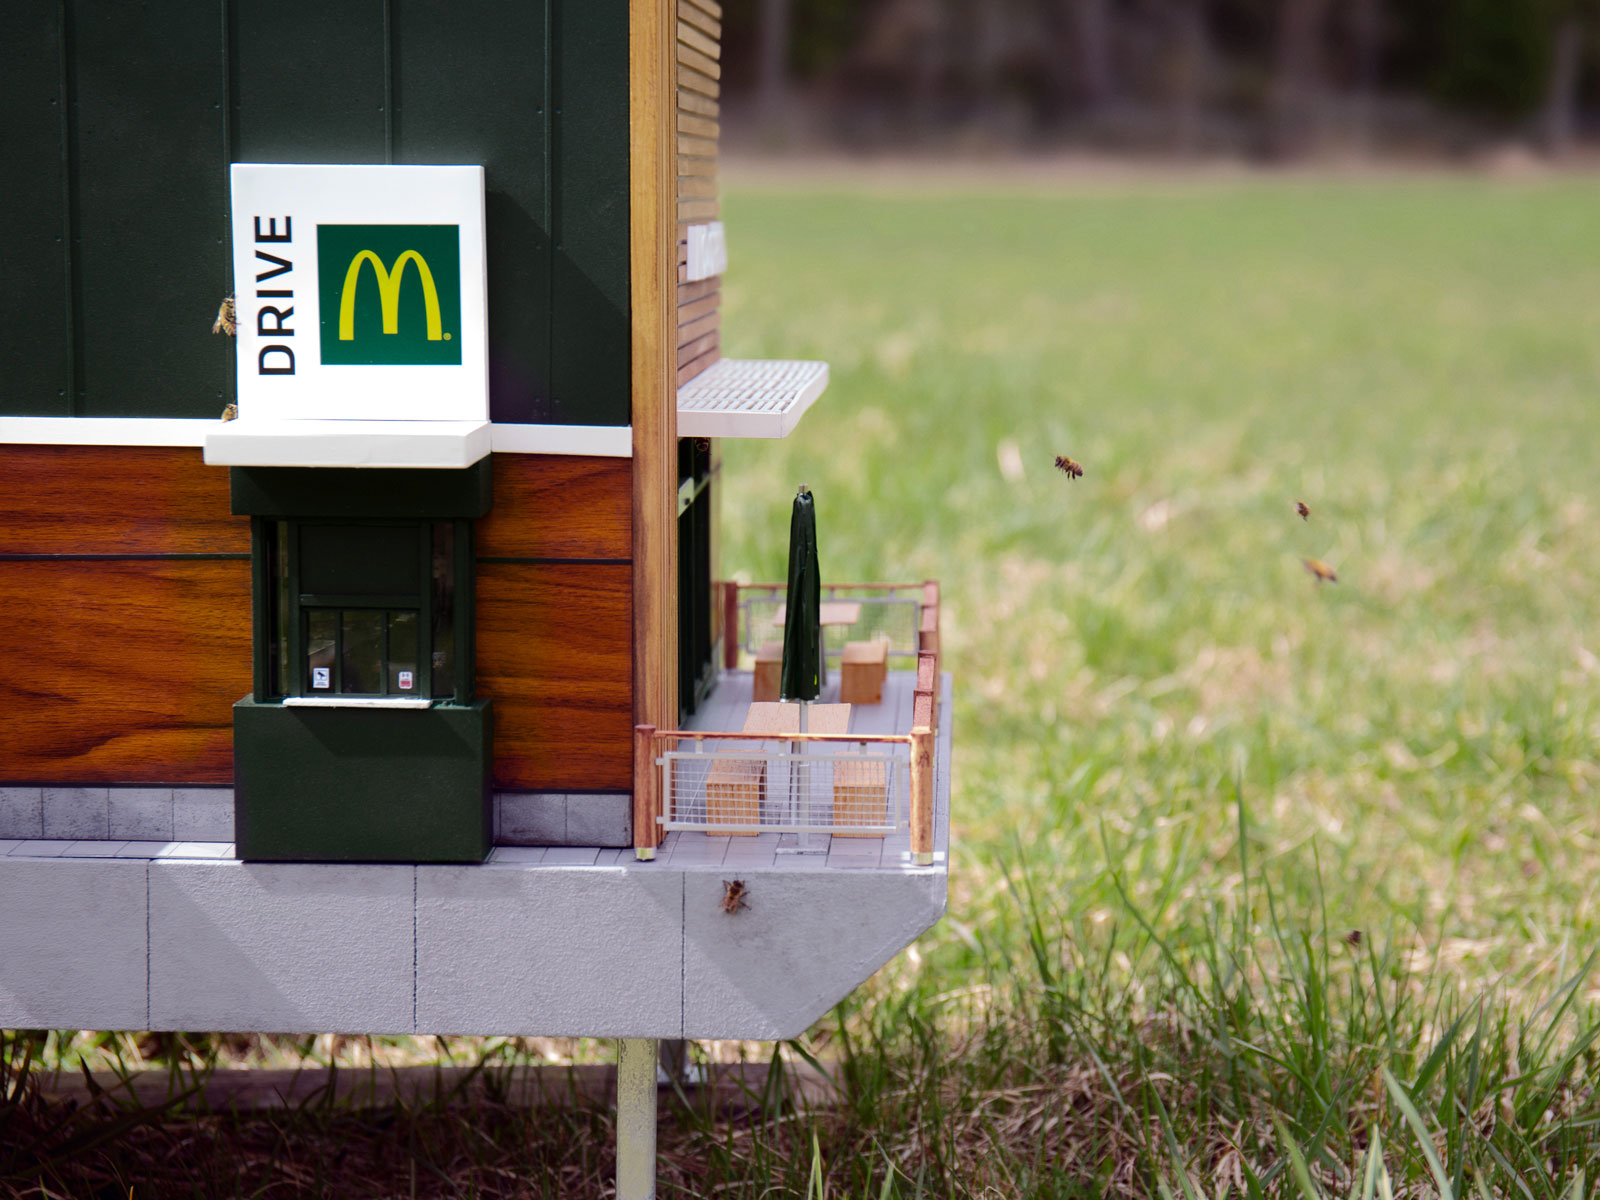 World's smallest McDonald's opens its doors